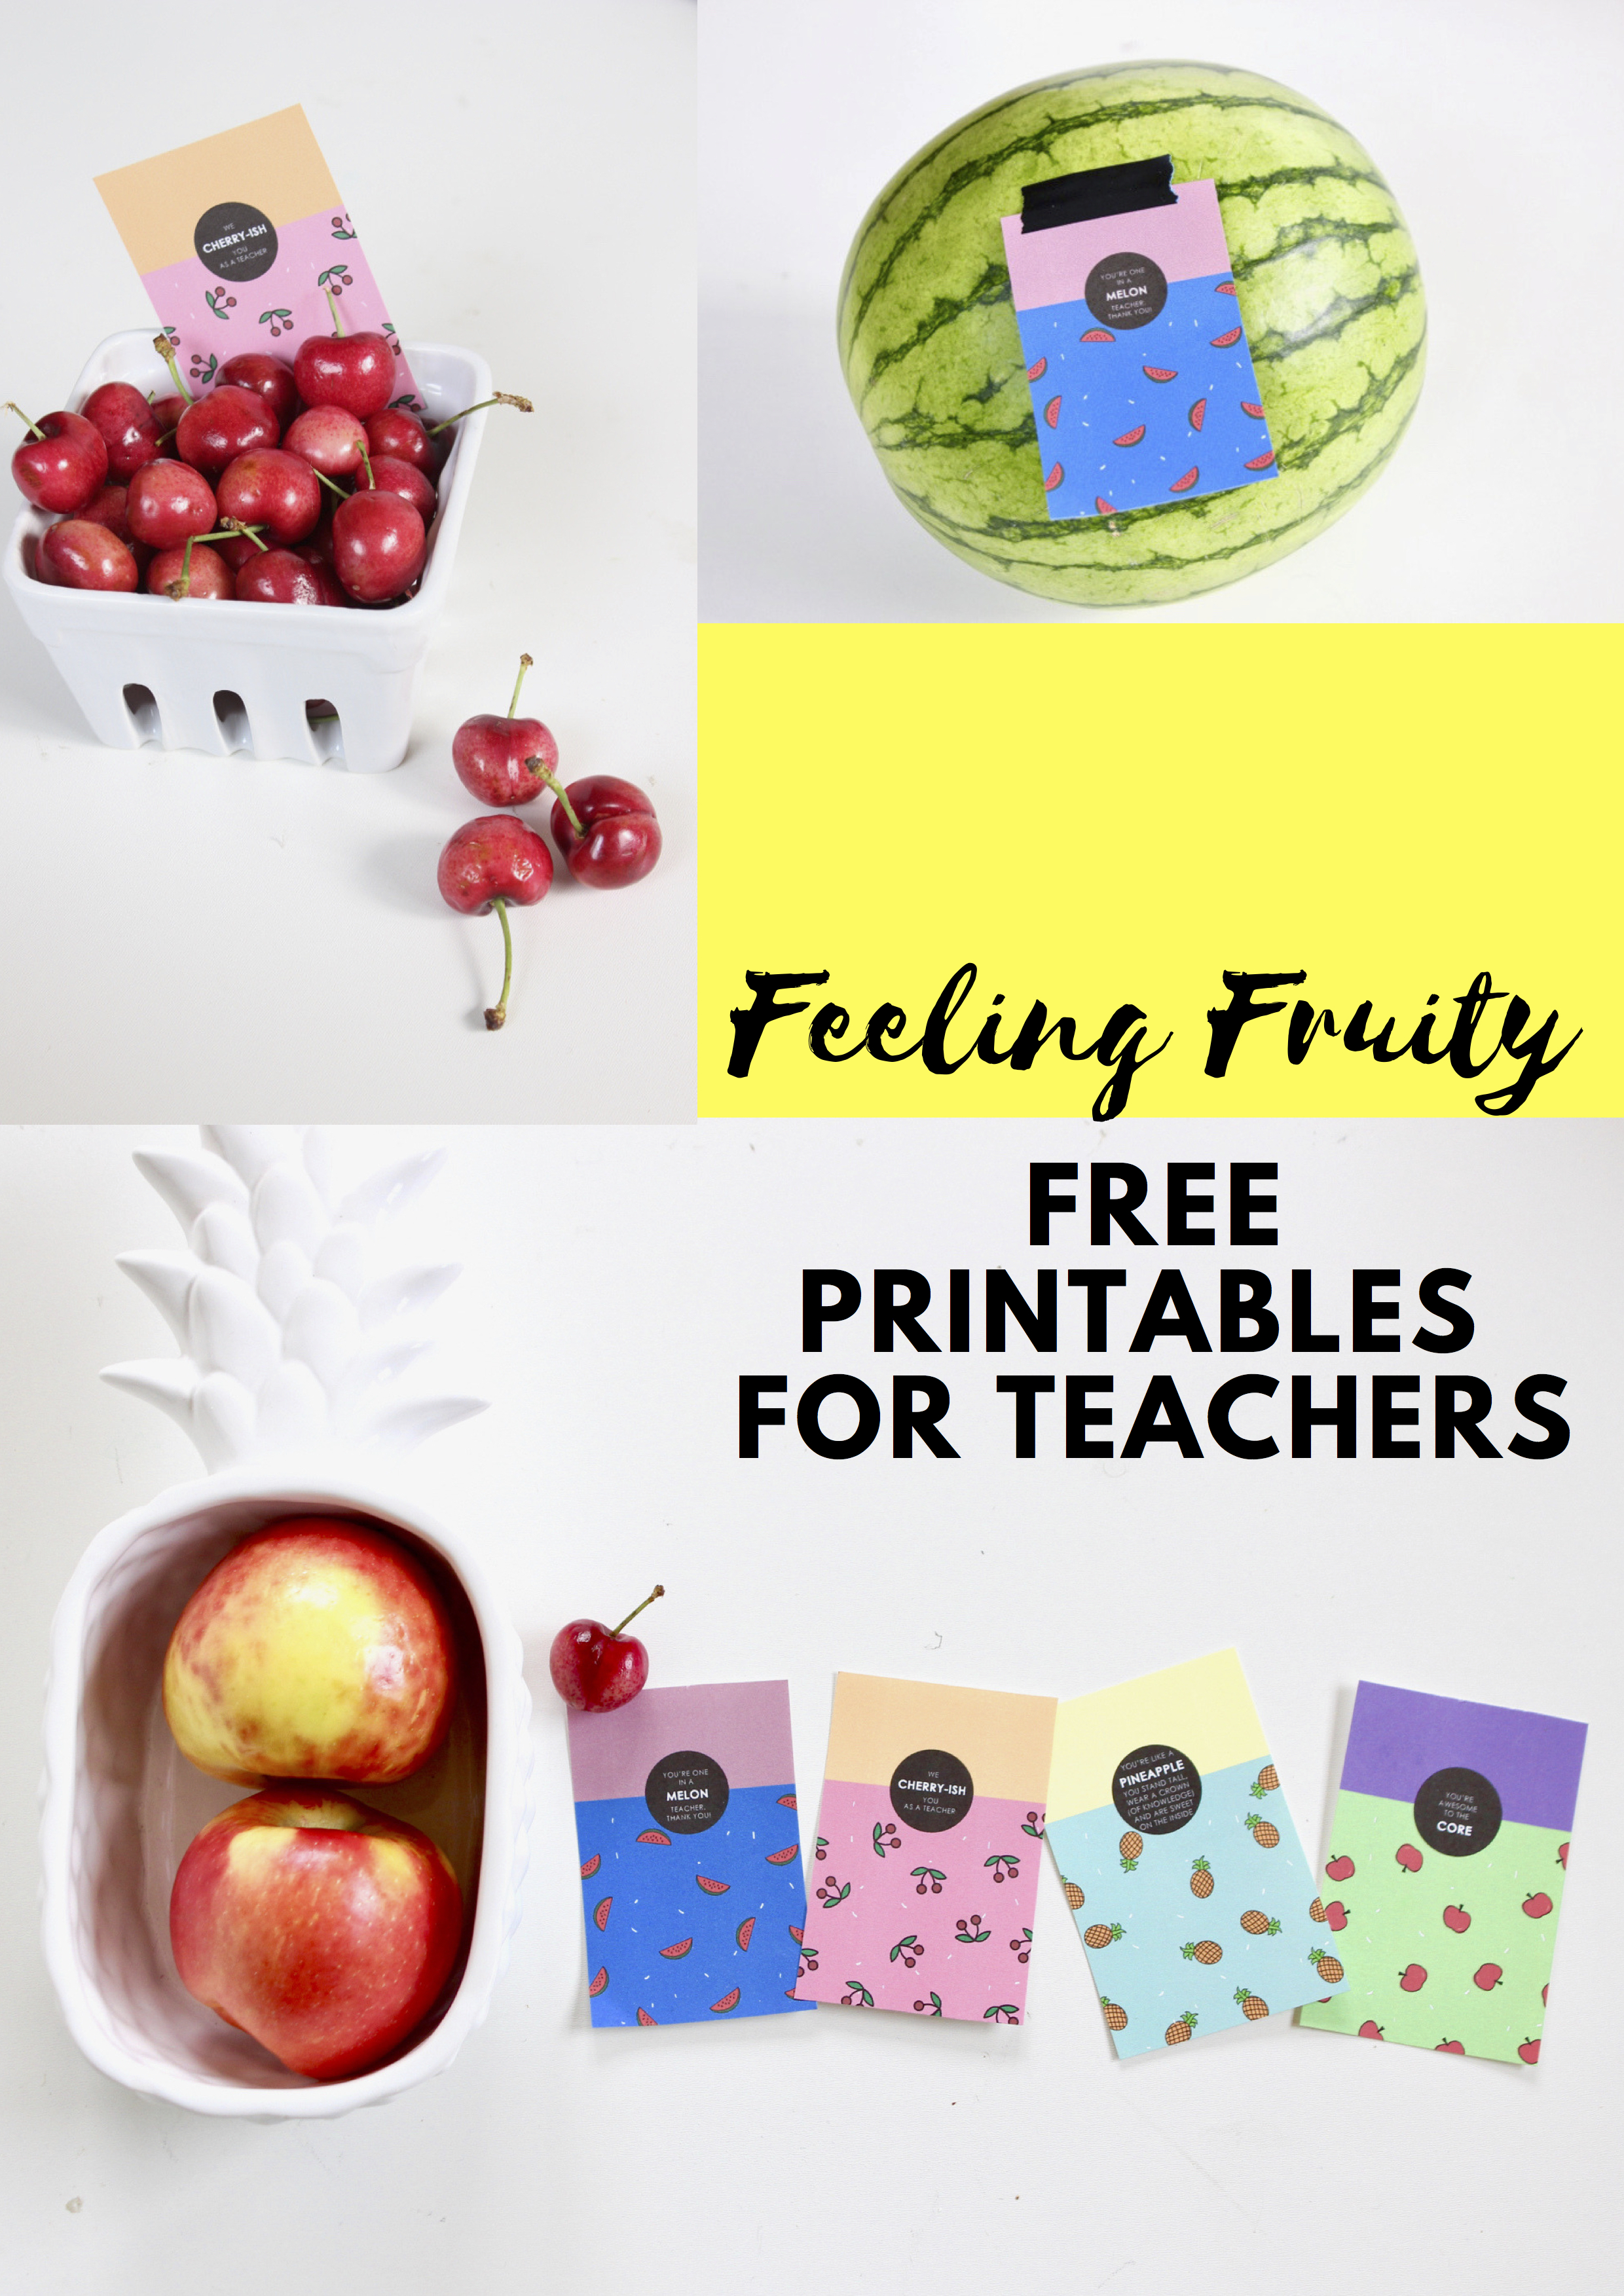 Celebrate Teachers With Fruit And Free Printables | j  sorelle